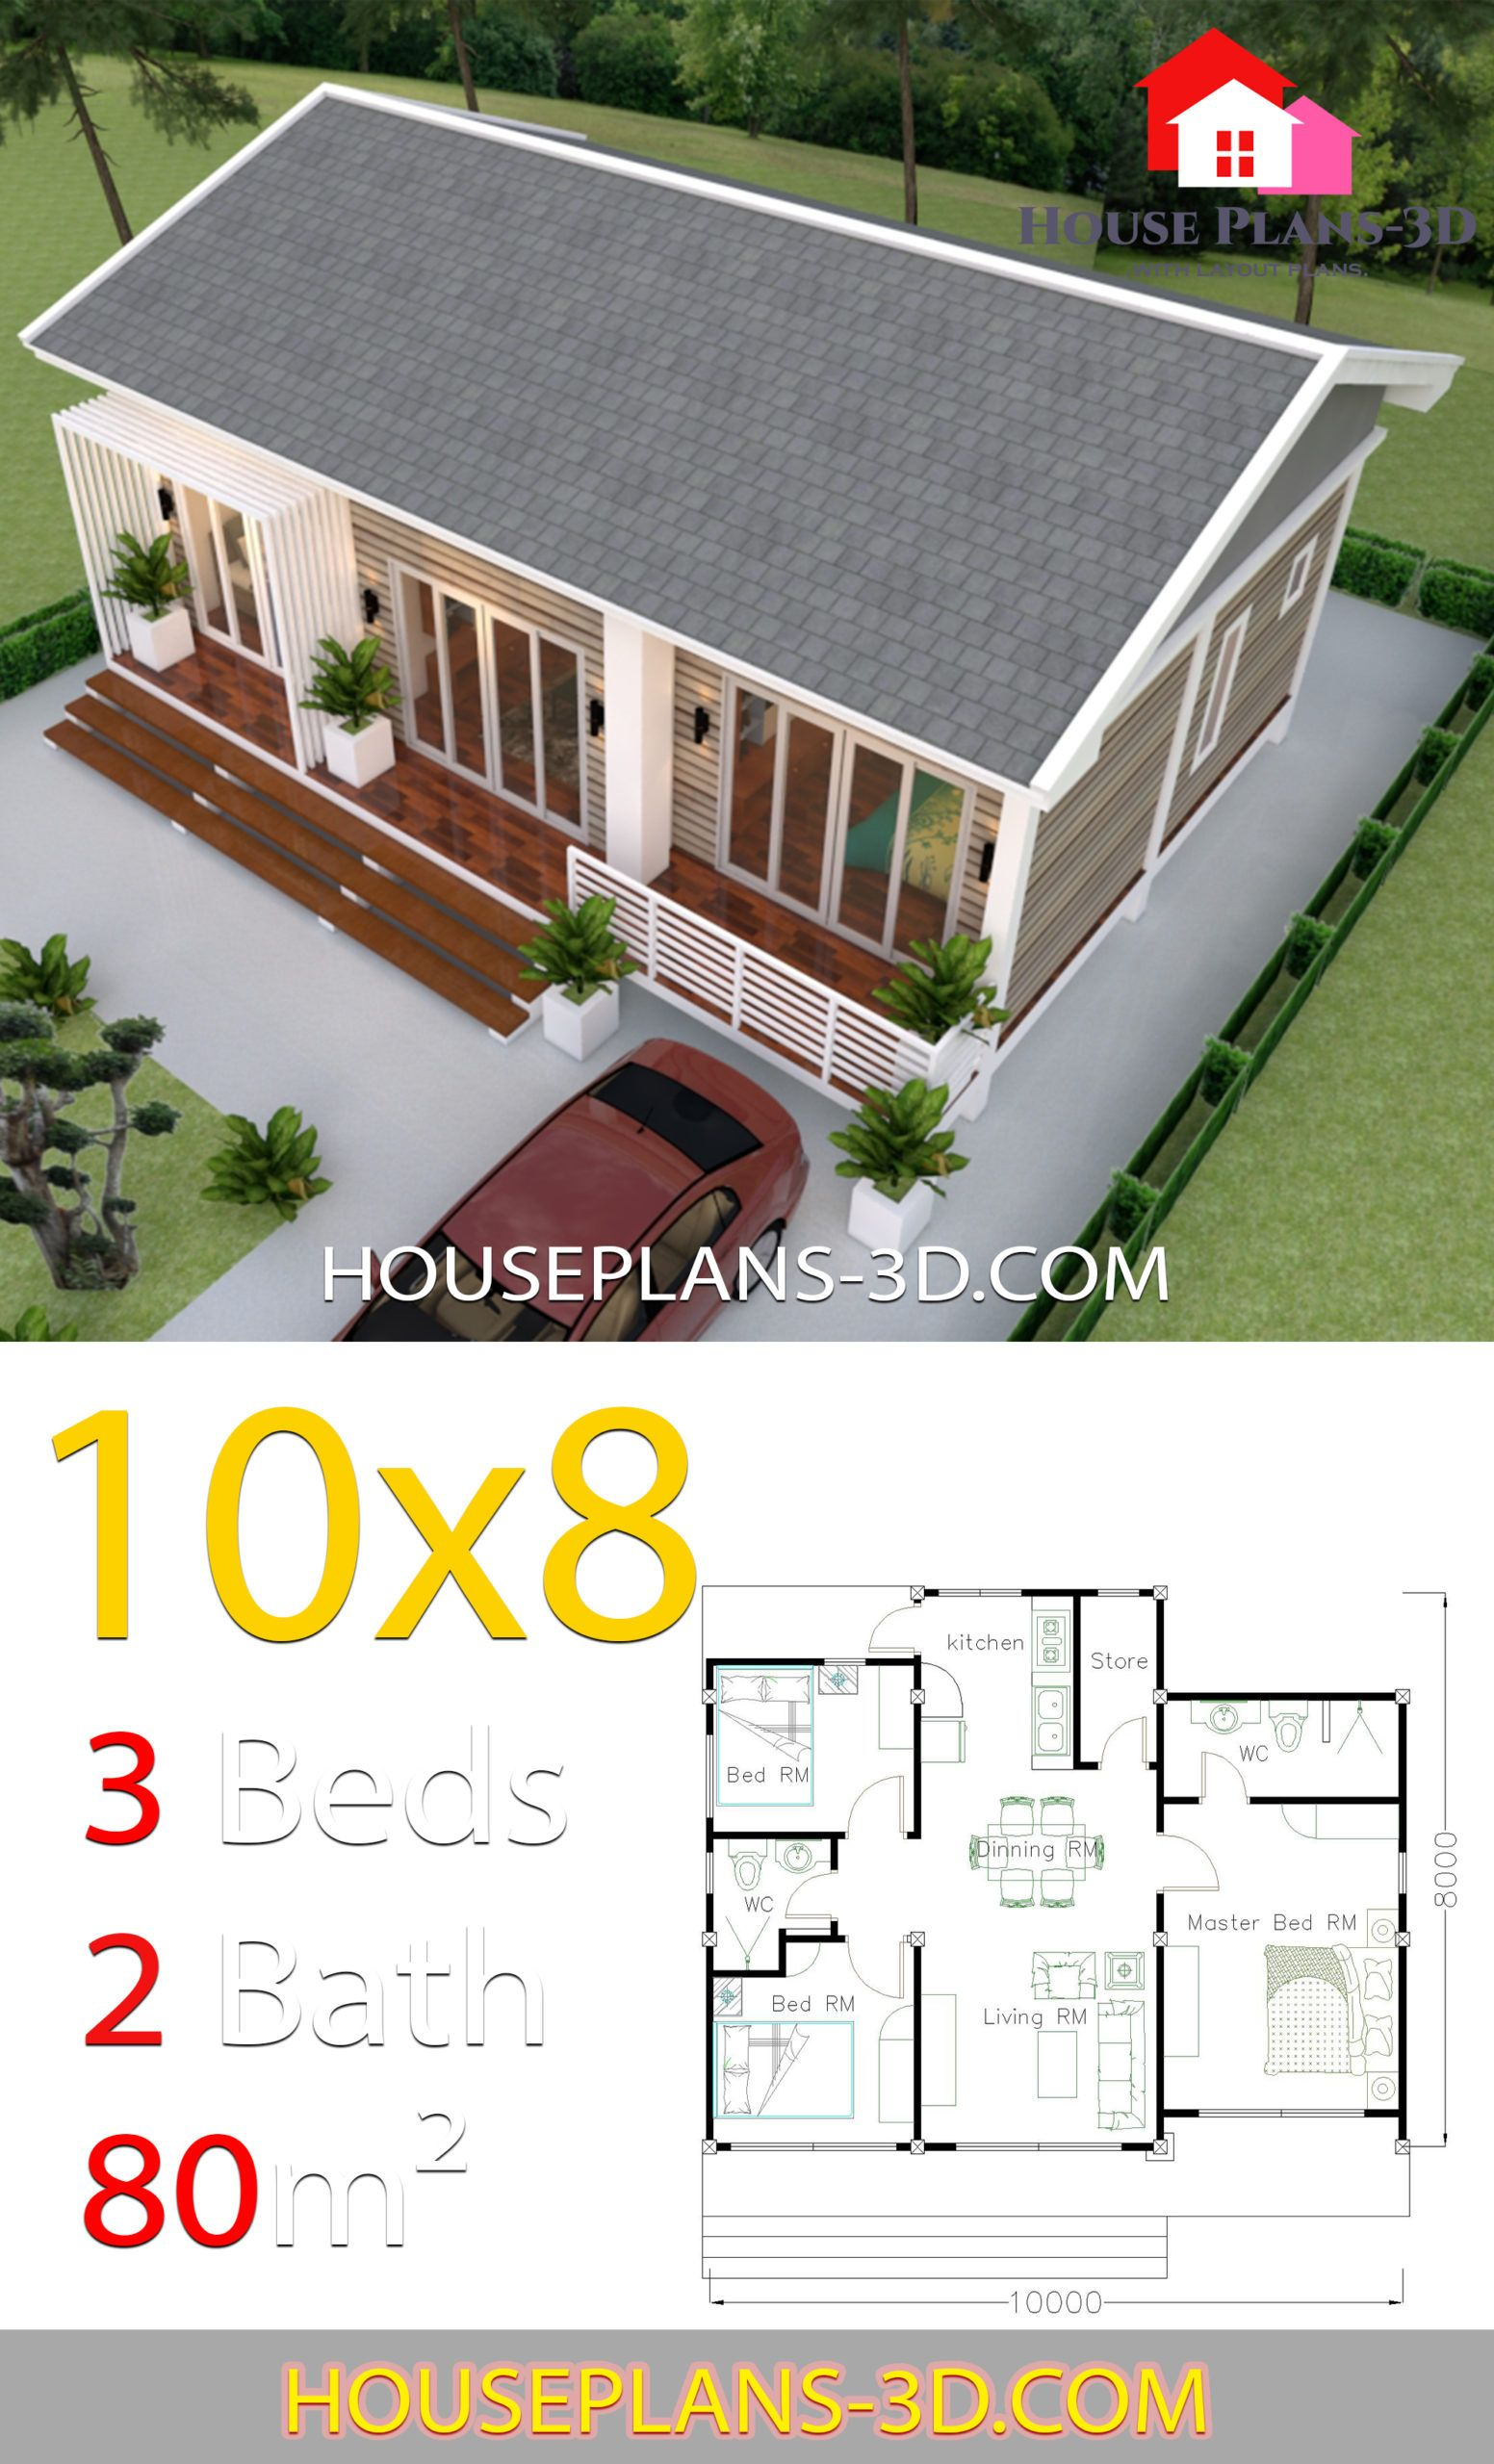 House Plans 10x8 With 3 Bedrooms Gable Roof House Plans 3d House Roof Design House Plan Gallery House Plans